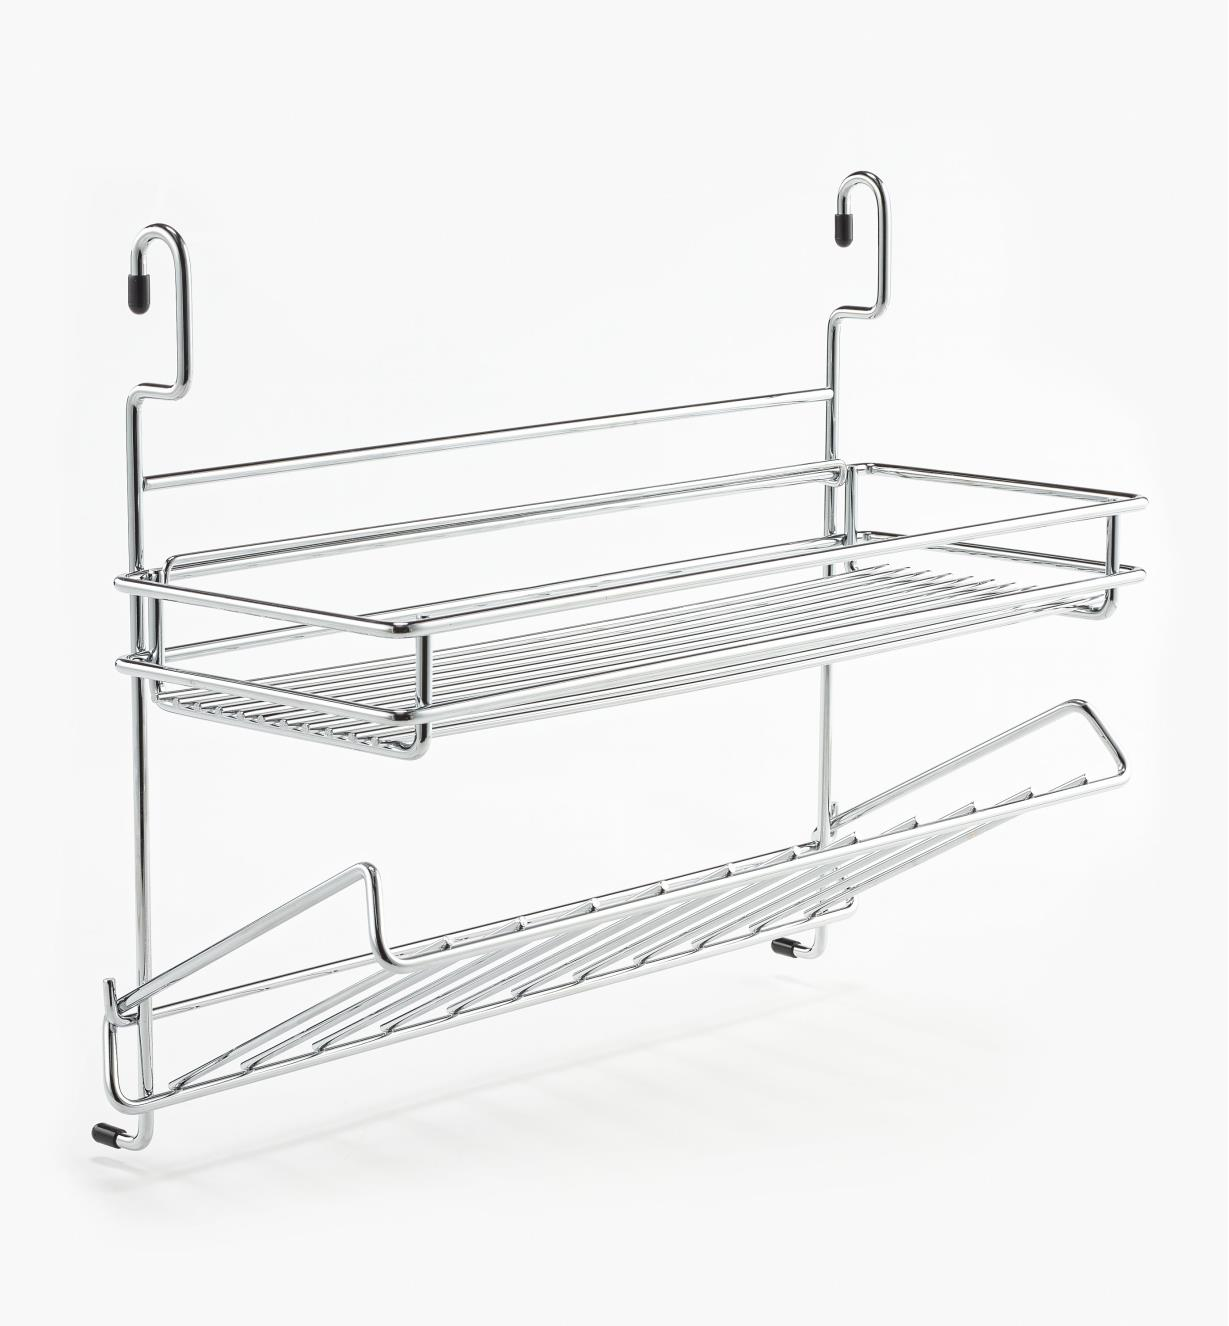 12K3437 - Shelf and Bottle Combination Rack